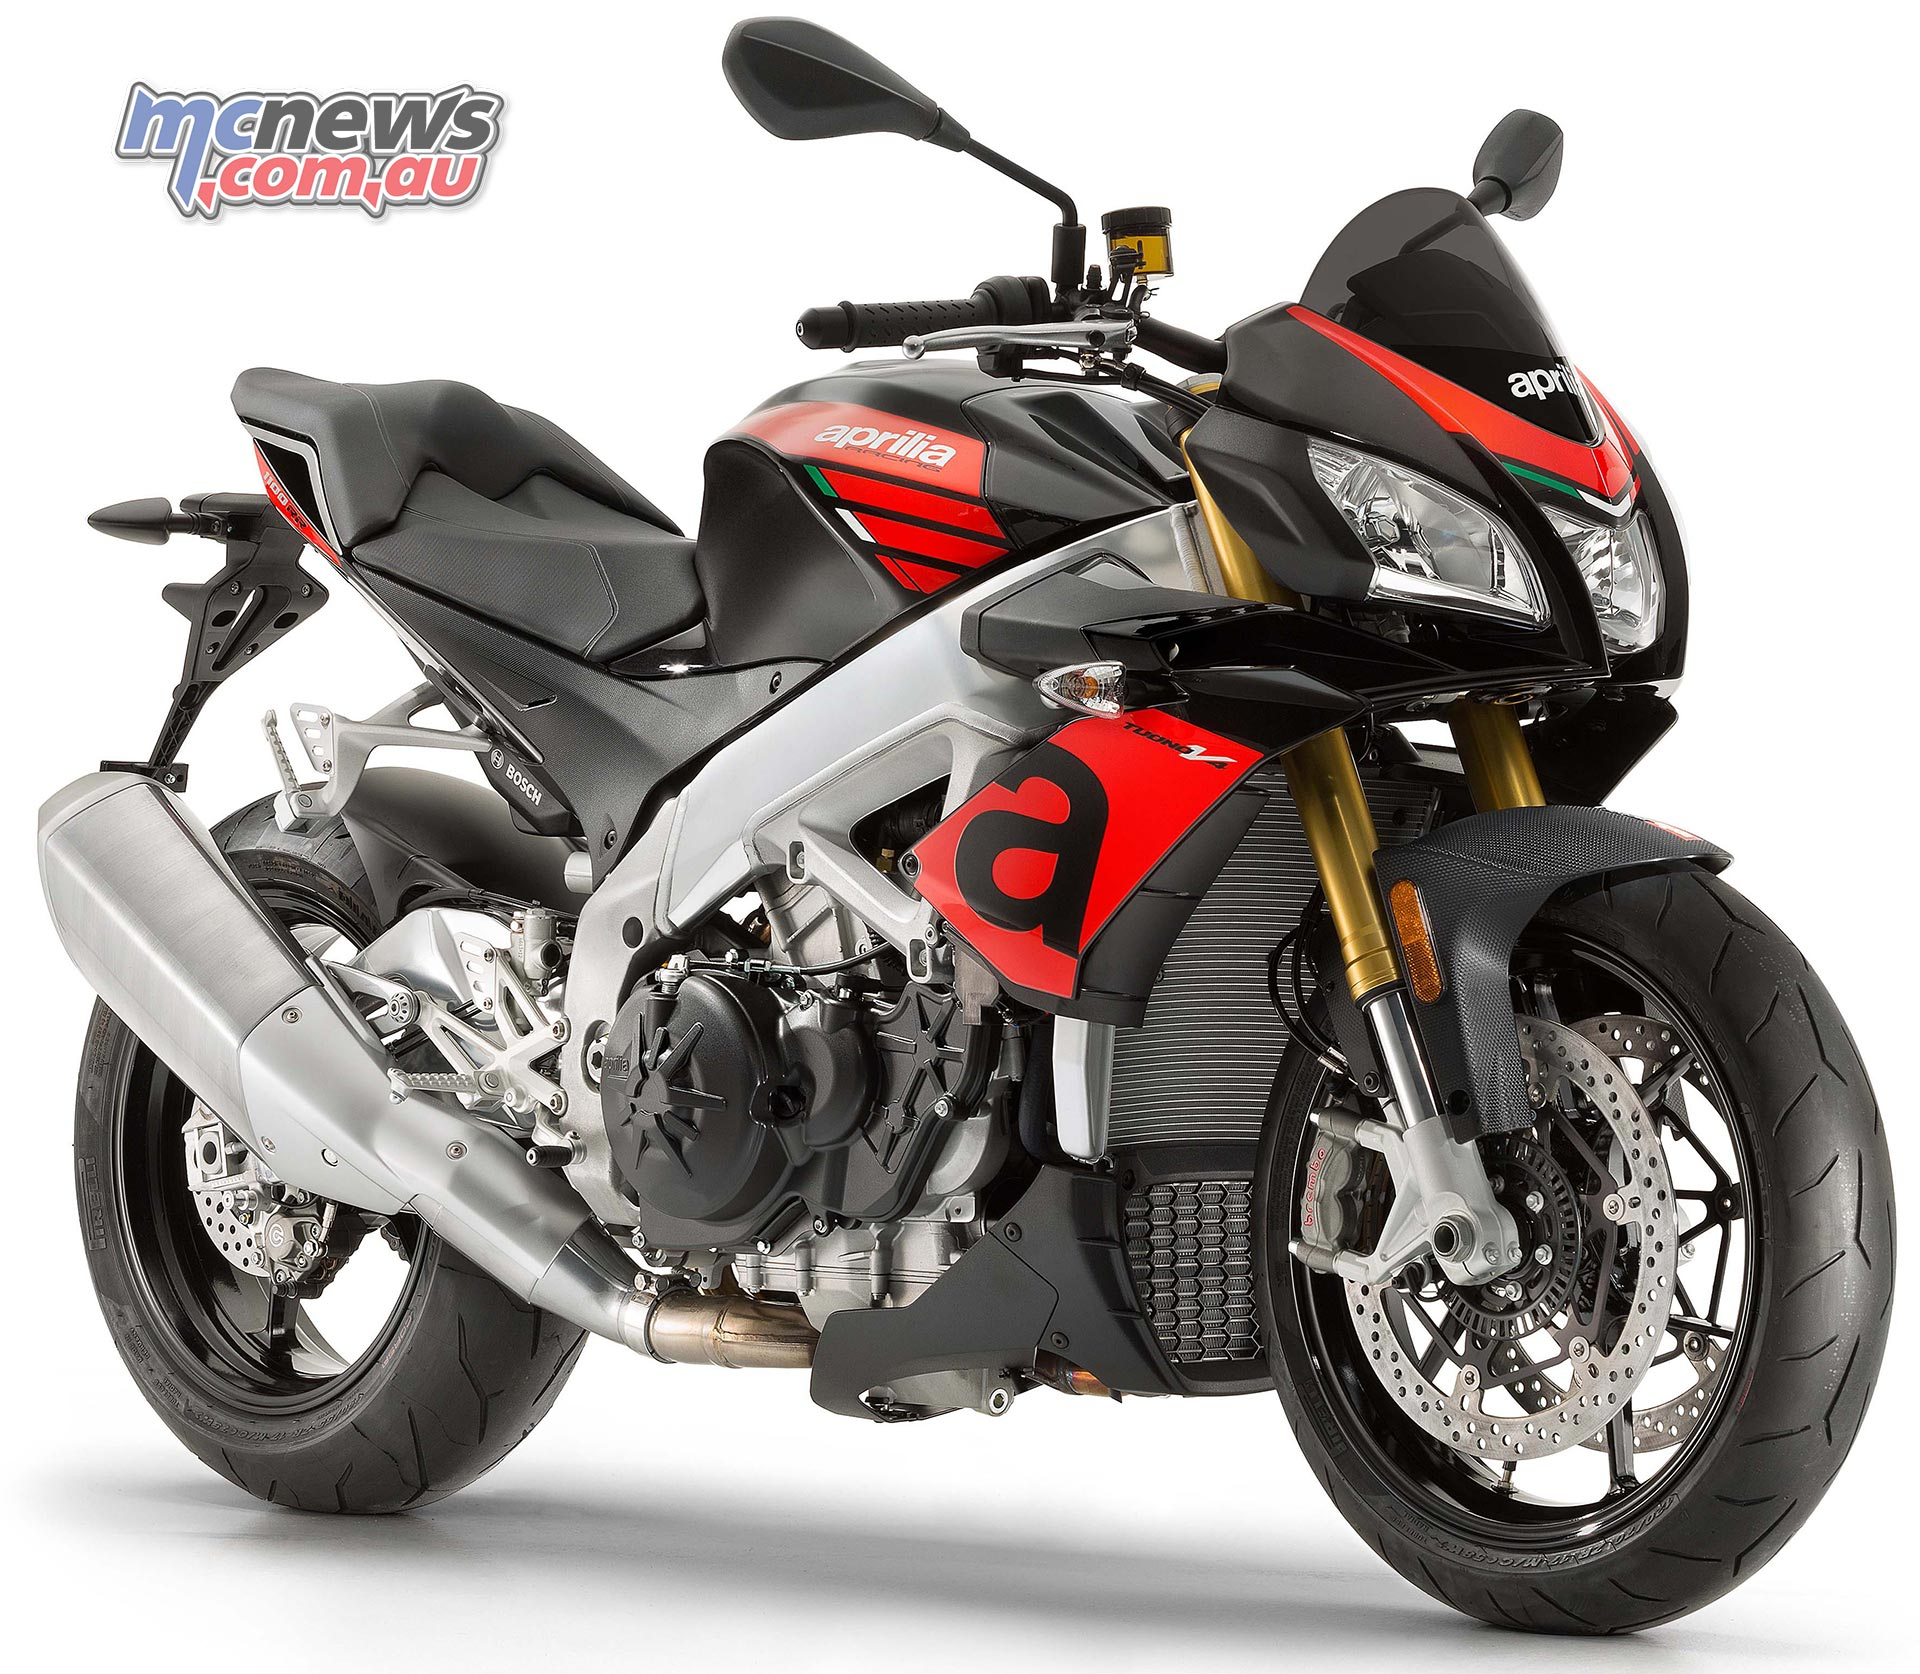 2017 Aprilia Tuono V4 1100 Rr And Tuono Factory Motorcycle News Sport And Reviews